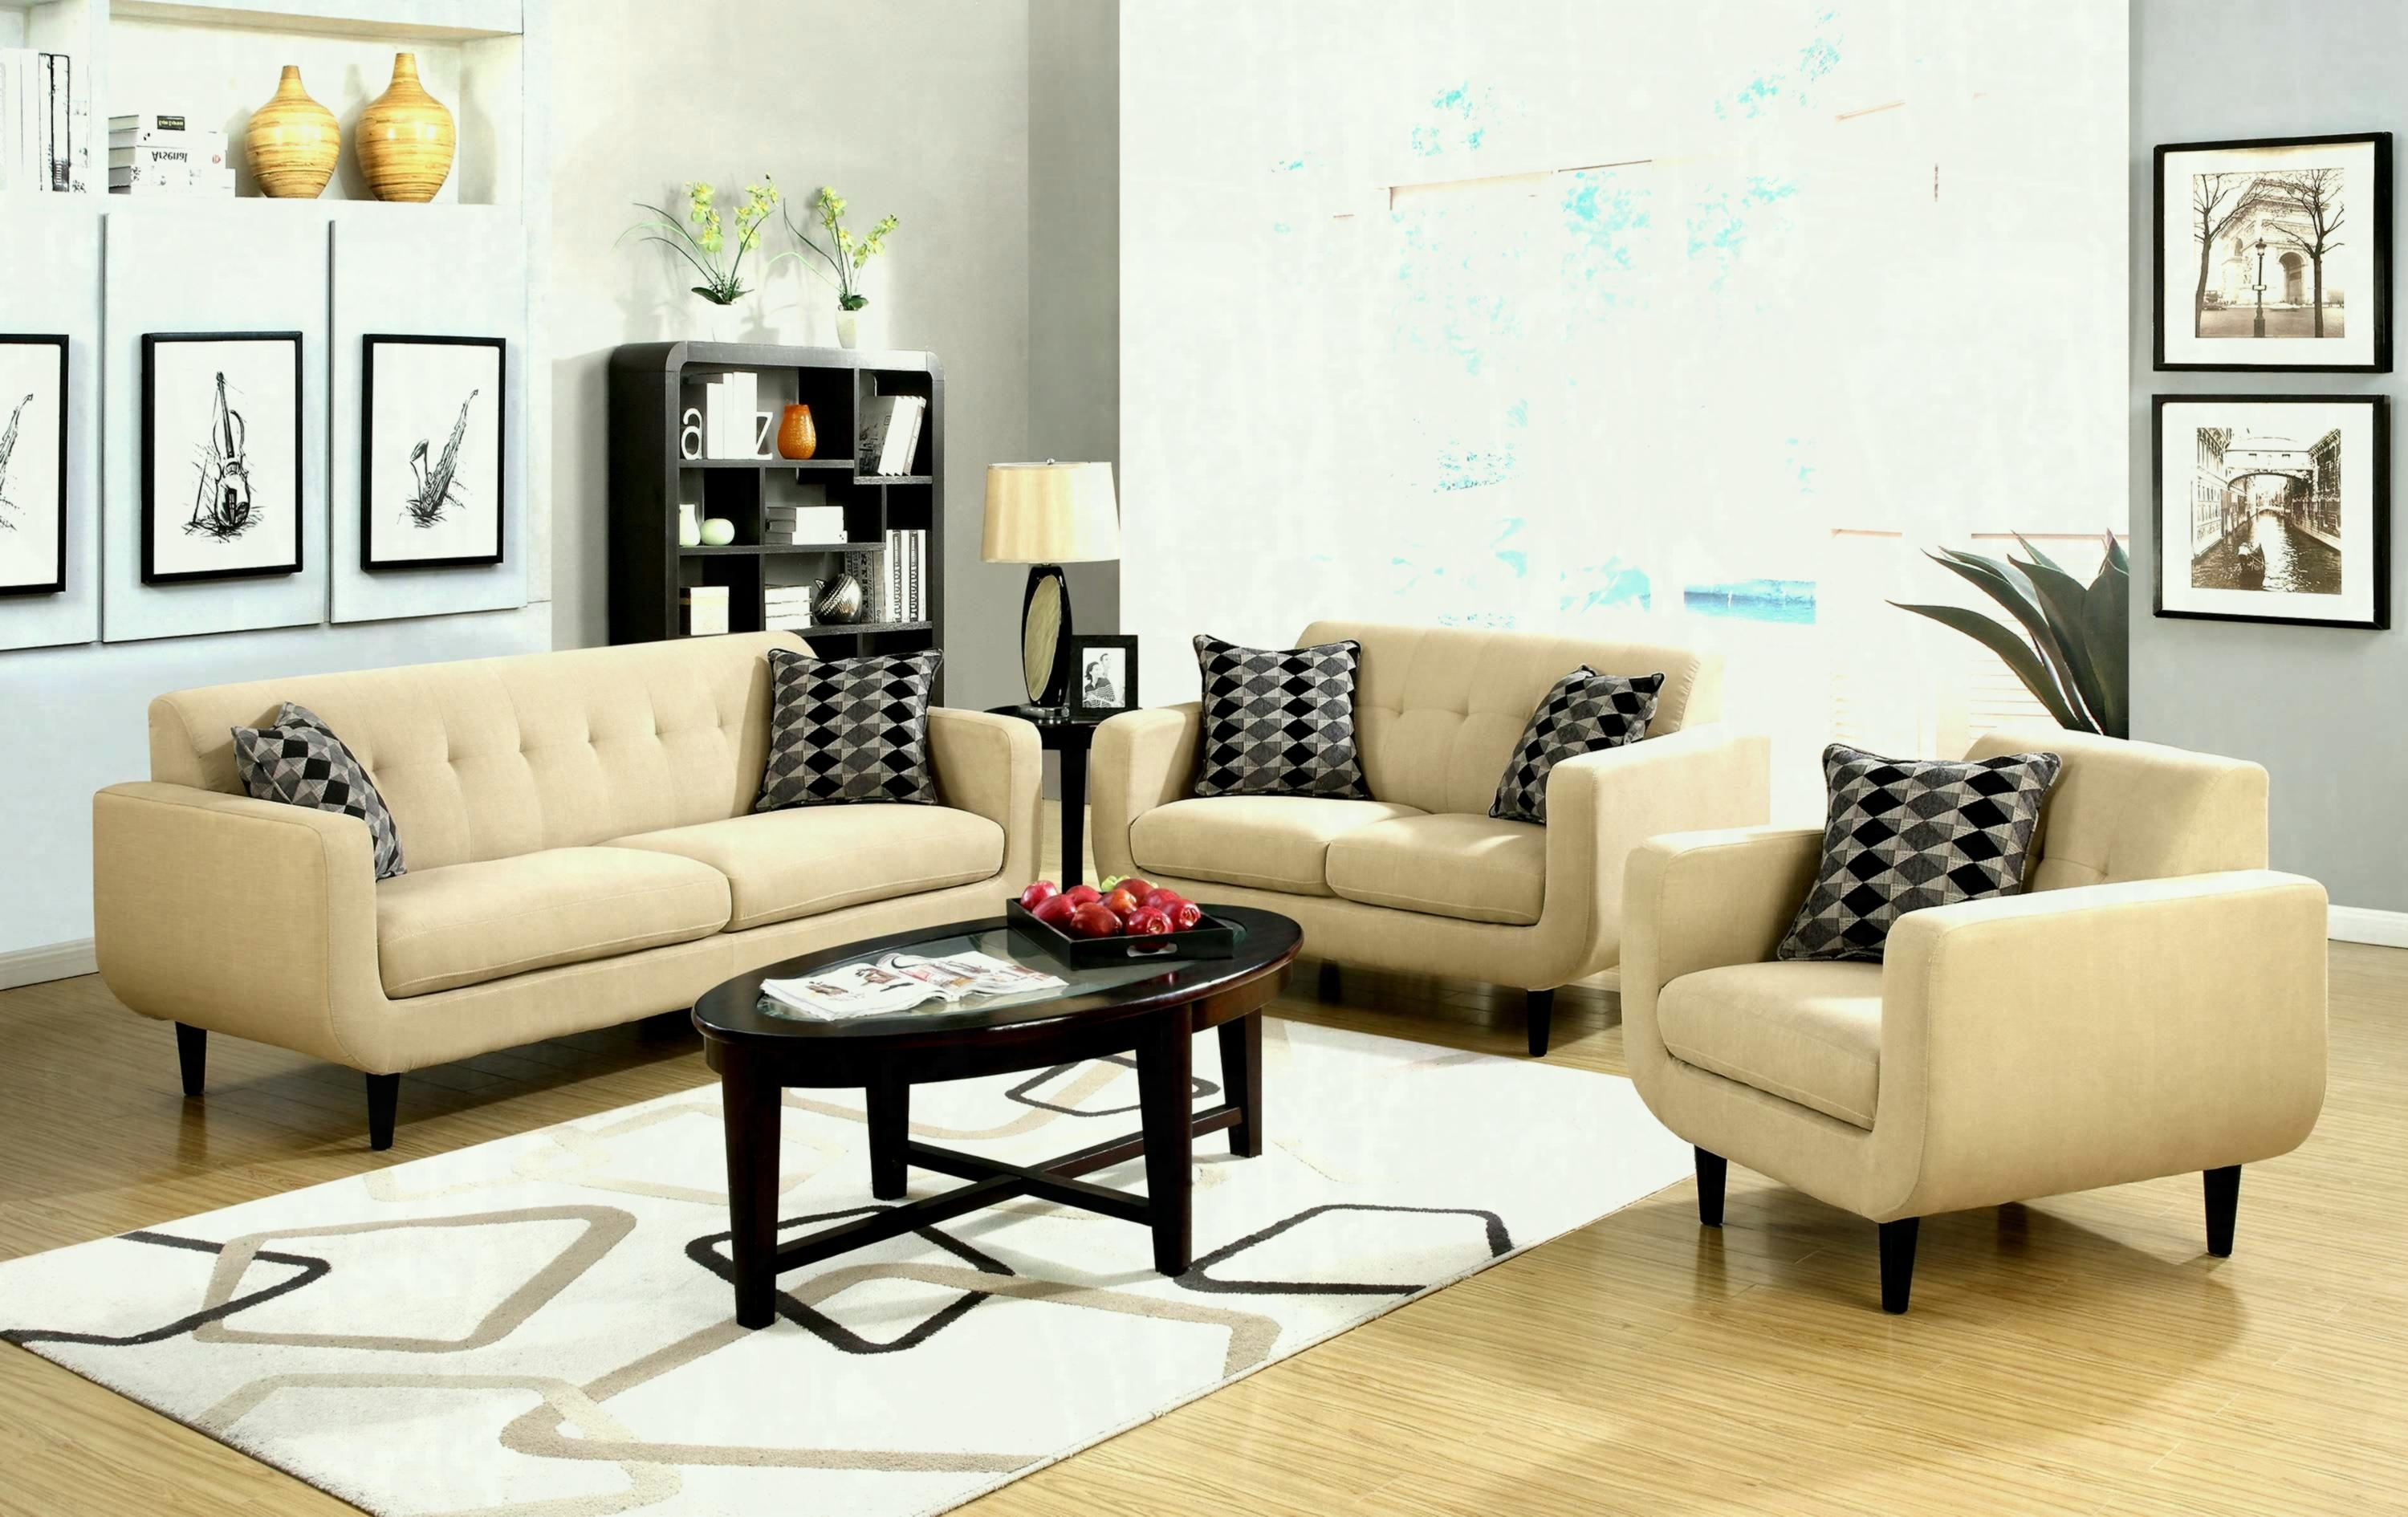 Tenny Cognac Piece Left Facing Chaise Sectional W Headrest Right intended for Tenny Cognac 2 Piece Left Facing Chaise Sectionals With 2 Headrest (Image 19 of 30)